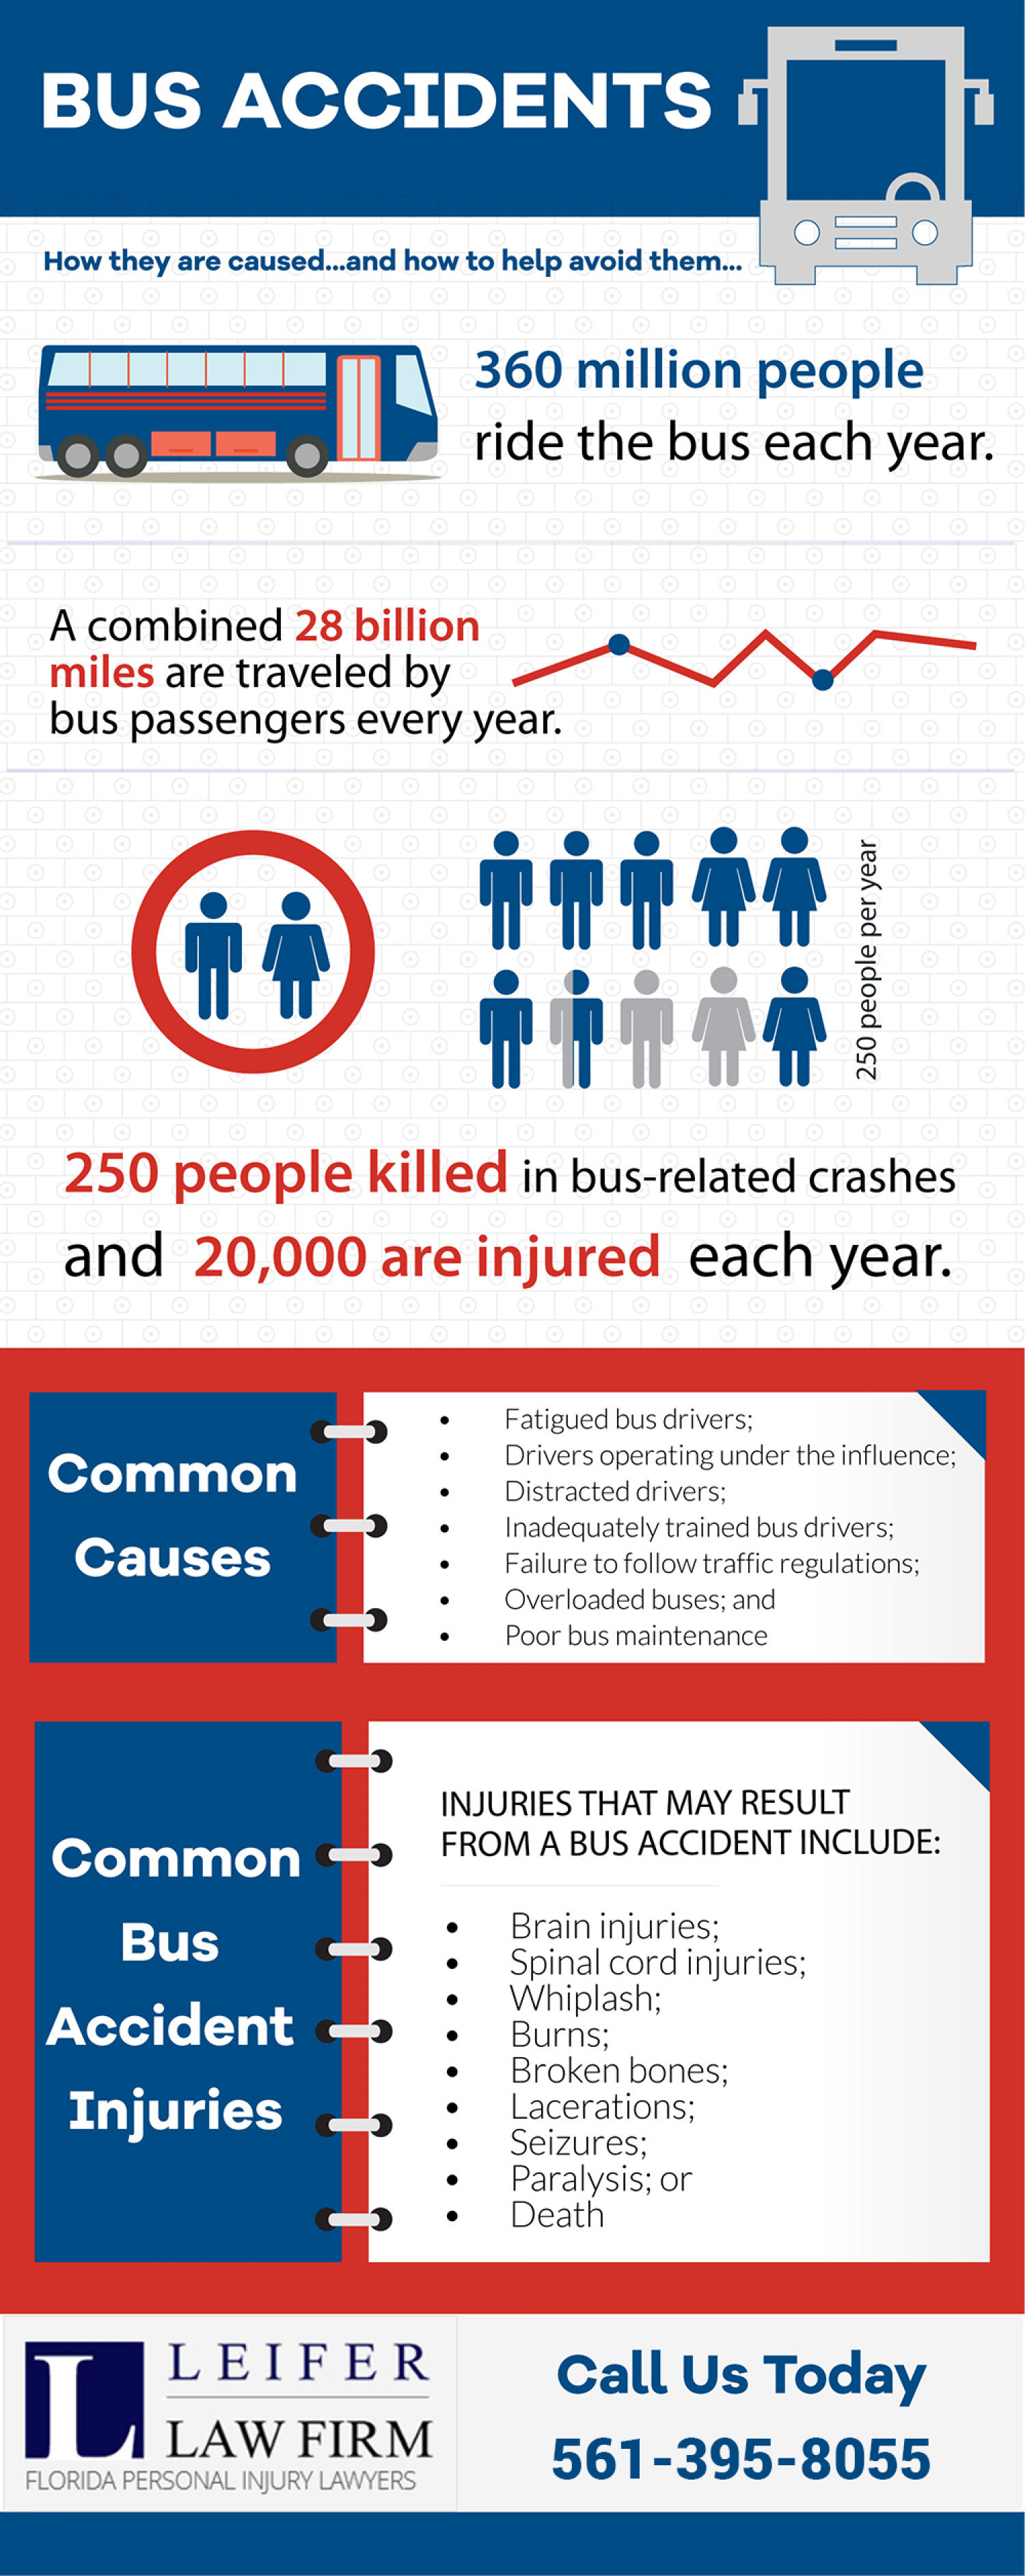 5 FAQs about Bus Accidents in Florida Infographic